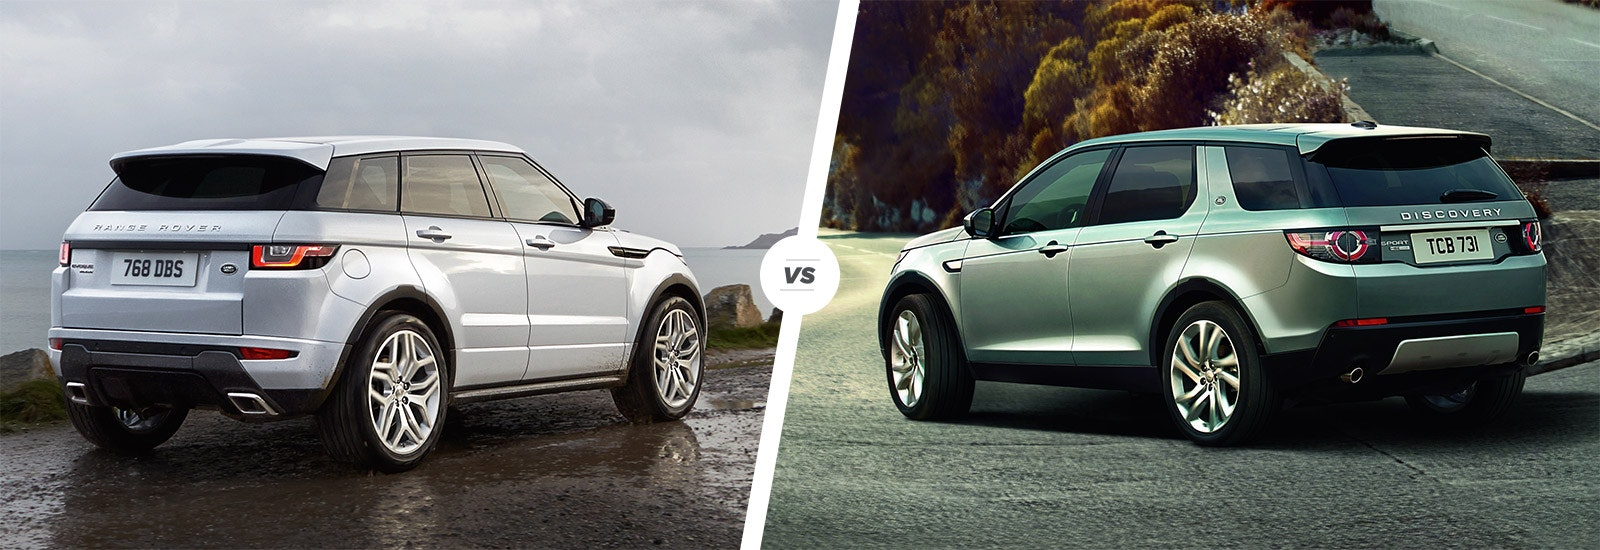 Range Rover Evoque Vs Land Rover Discovery Sport Carwow